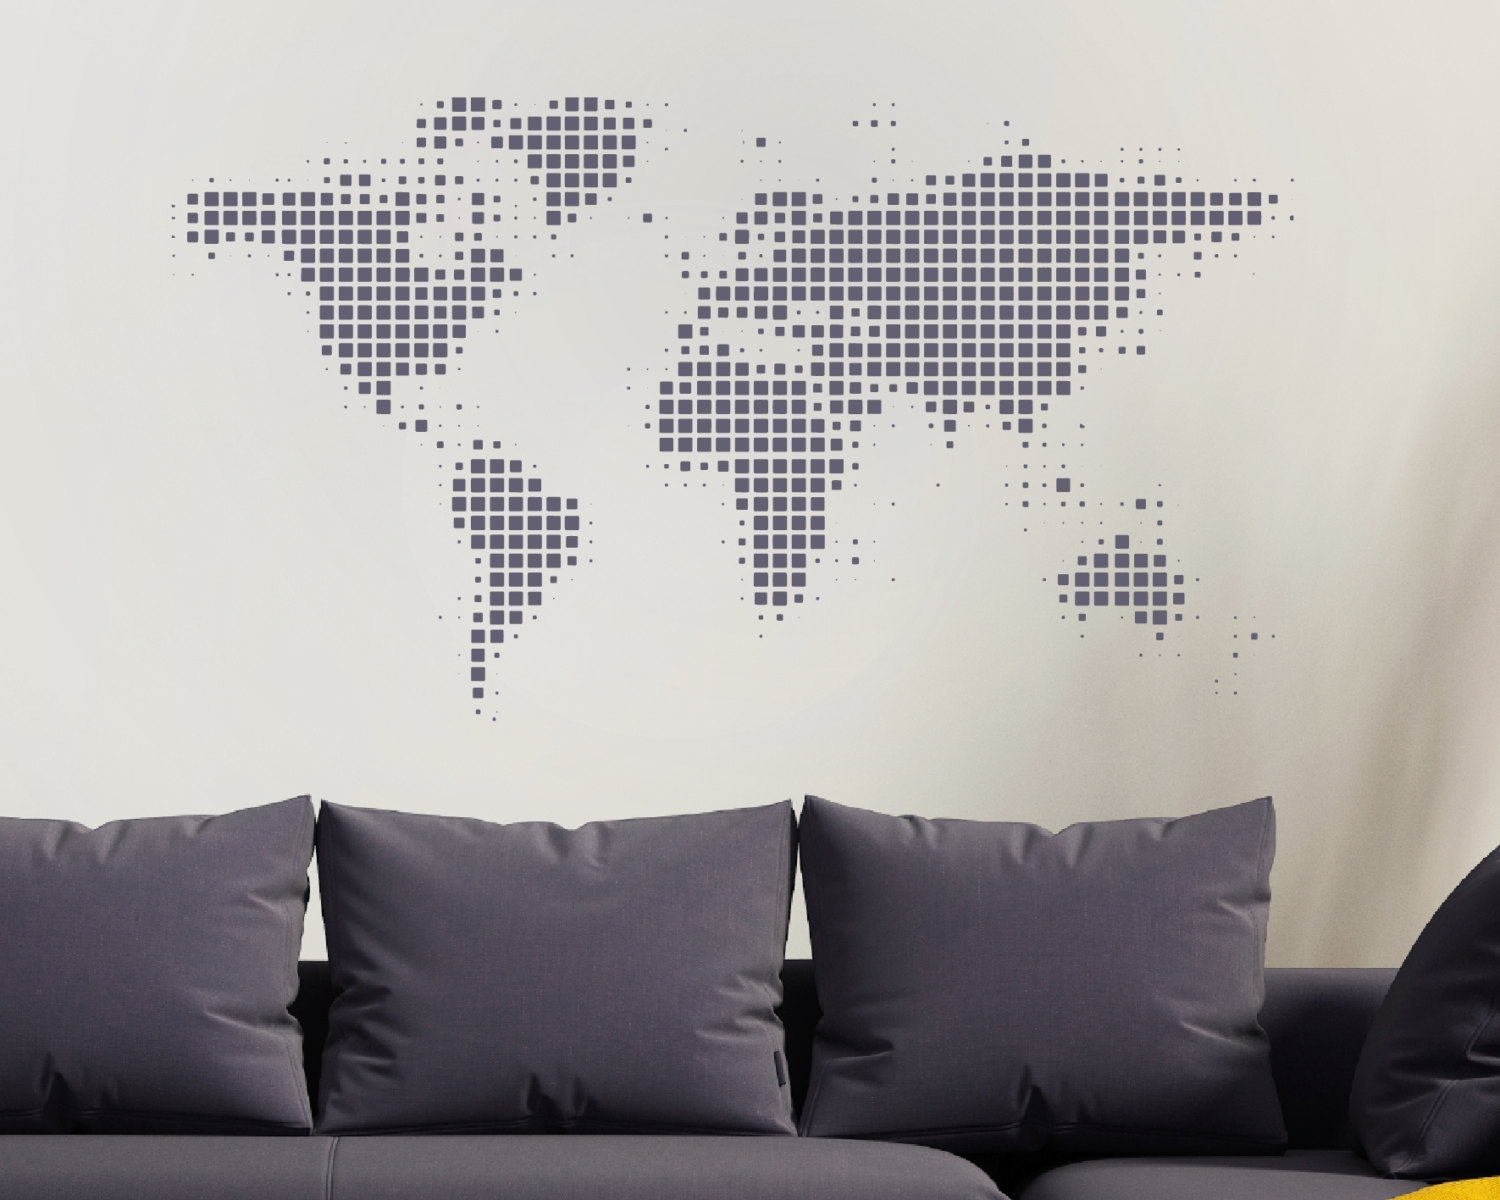 World Map Wall Sticker – World Wall Sticker – World Map – World With Best And Newest Maps Wall Art (Gallery 4 of 20)